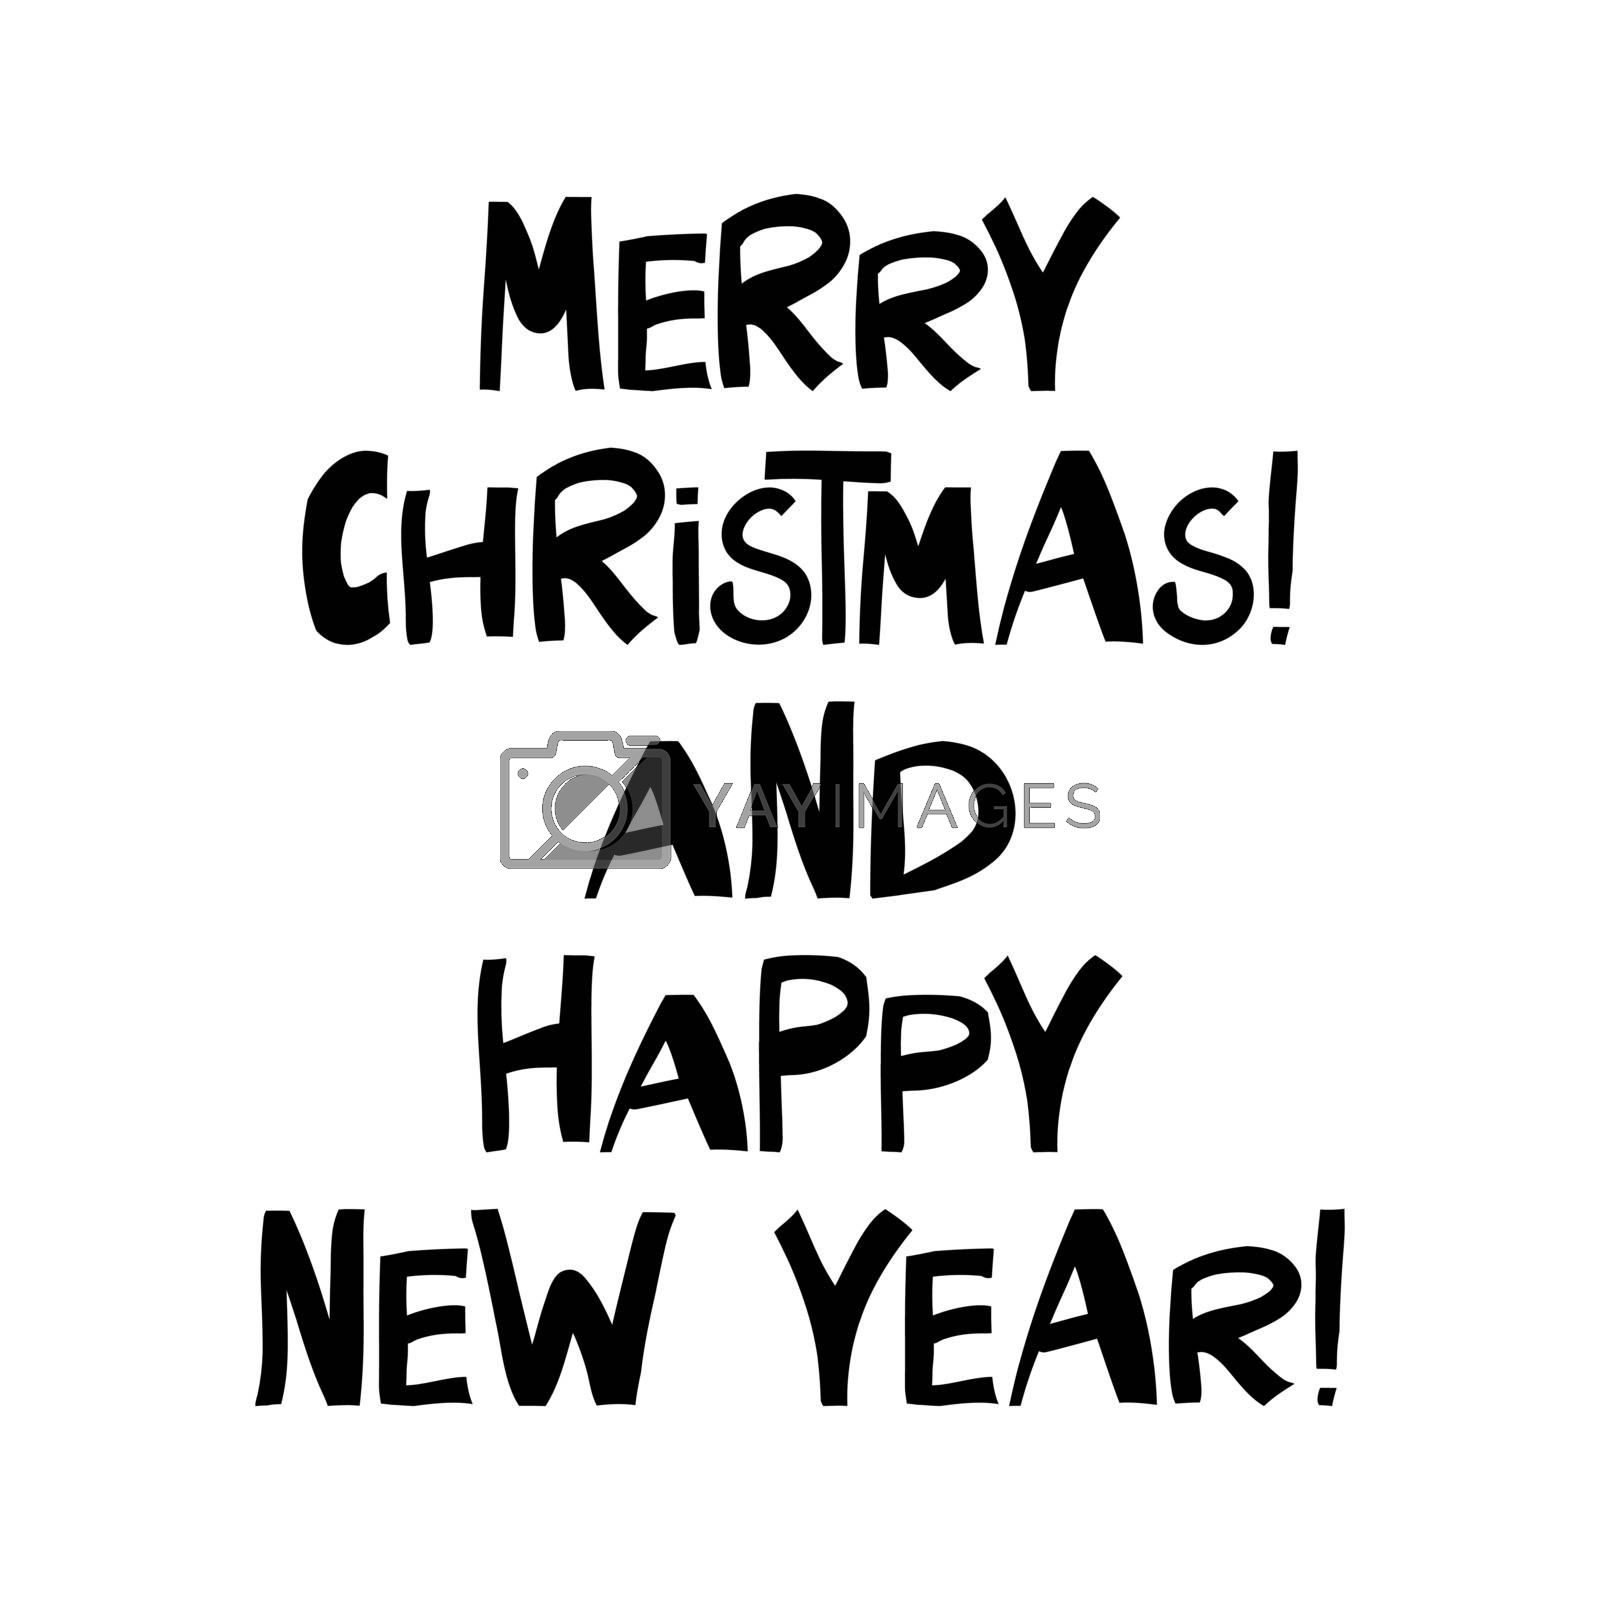 Merry Christmas and Happy New Year. Winter holidays quote. Cute hand drawn lettering in modern scandinavian style. Isolated on white. Vector stock illustration.